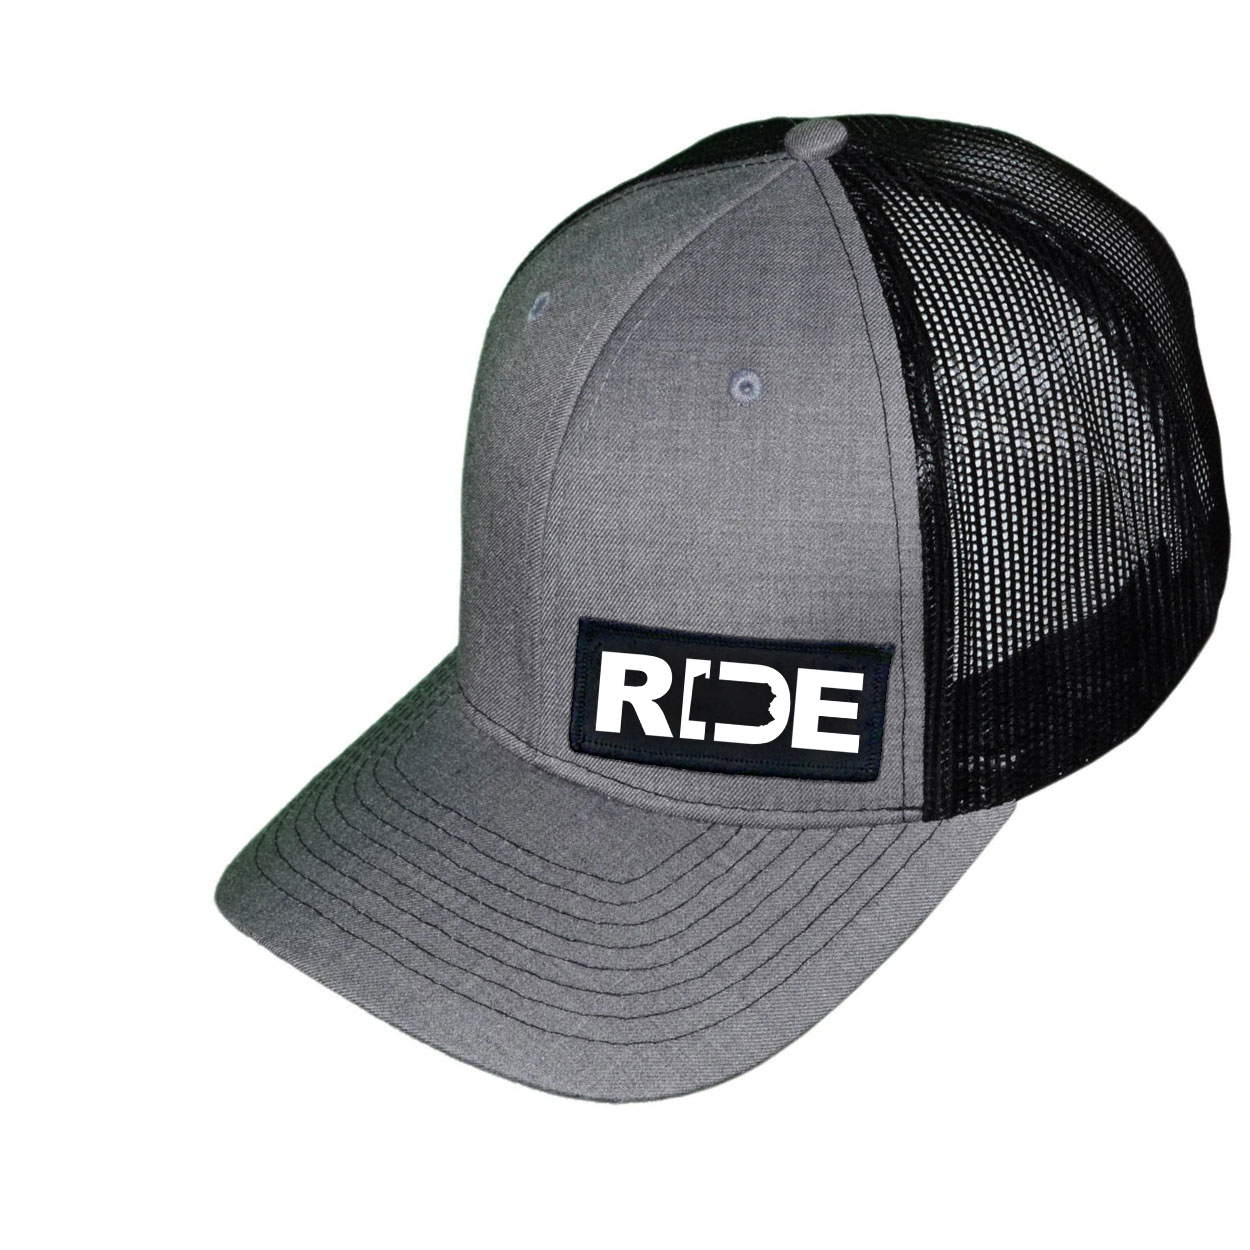 Ride Pennsylvania Night Out Woven Patch Snapback Trucker Hat Heather Gray/Black (White Logo)